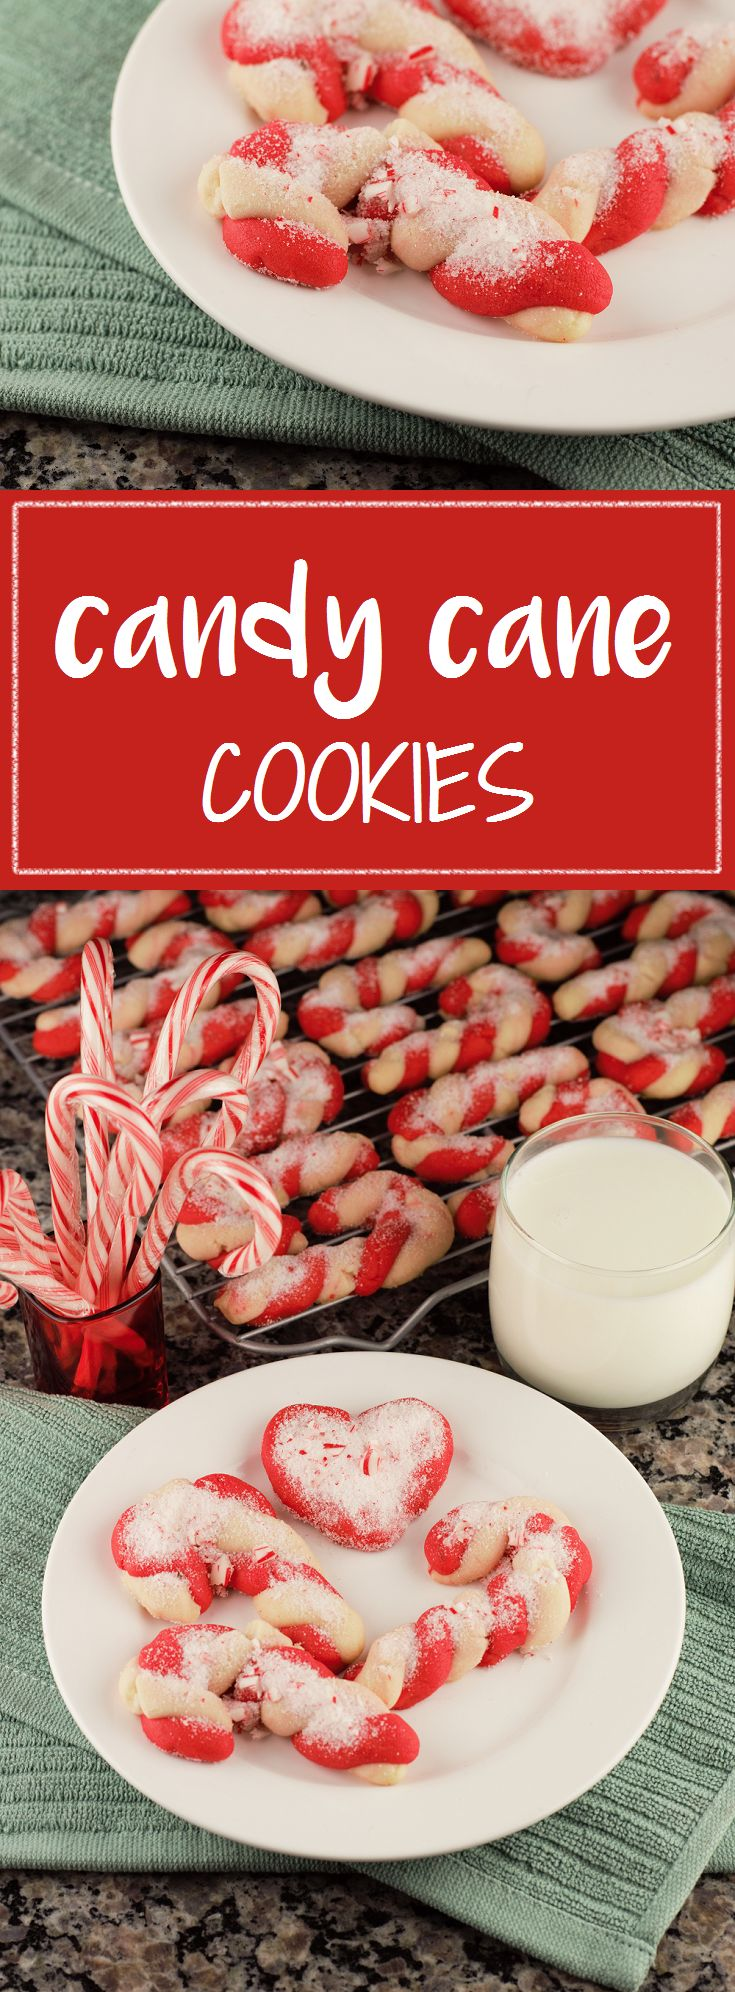 Shortbread-style Candy Cane Cookies topped with peppermint sugar are the perfect recipe for holiday cheer!